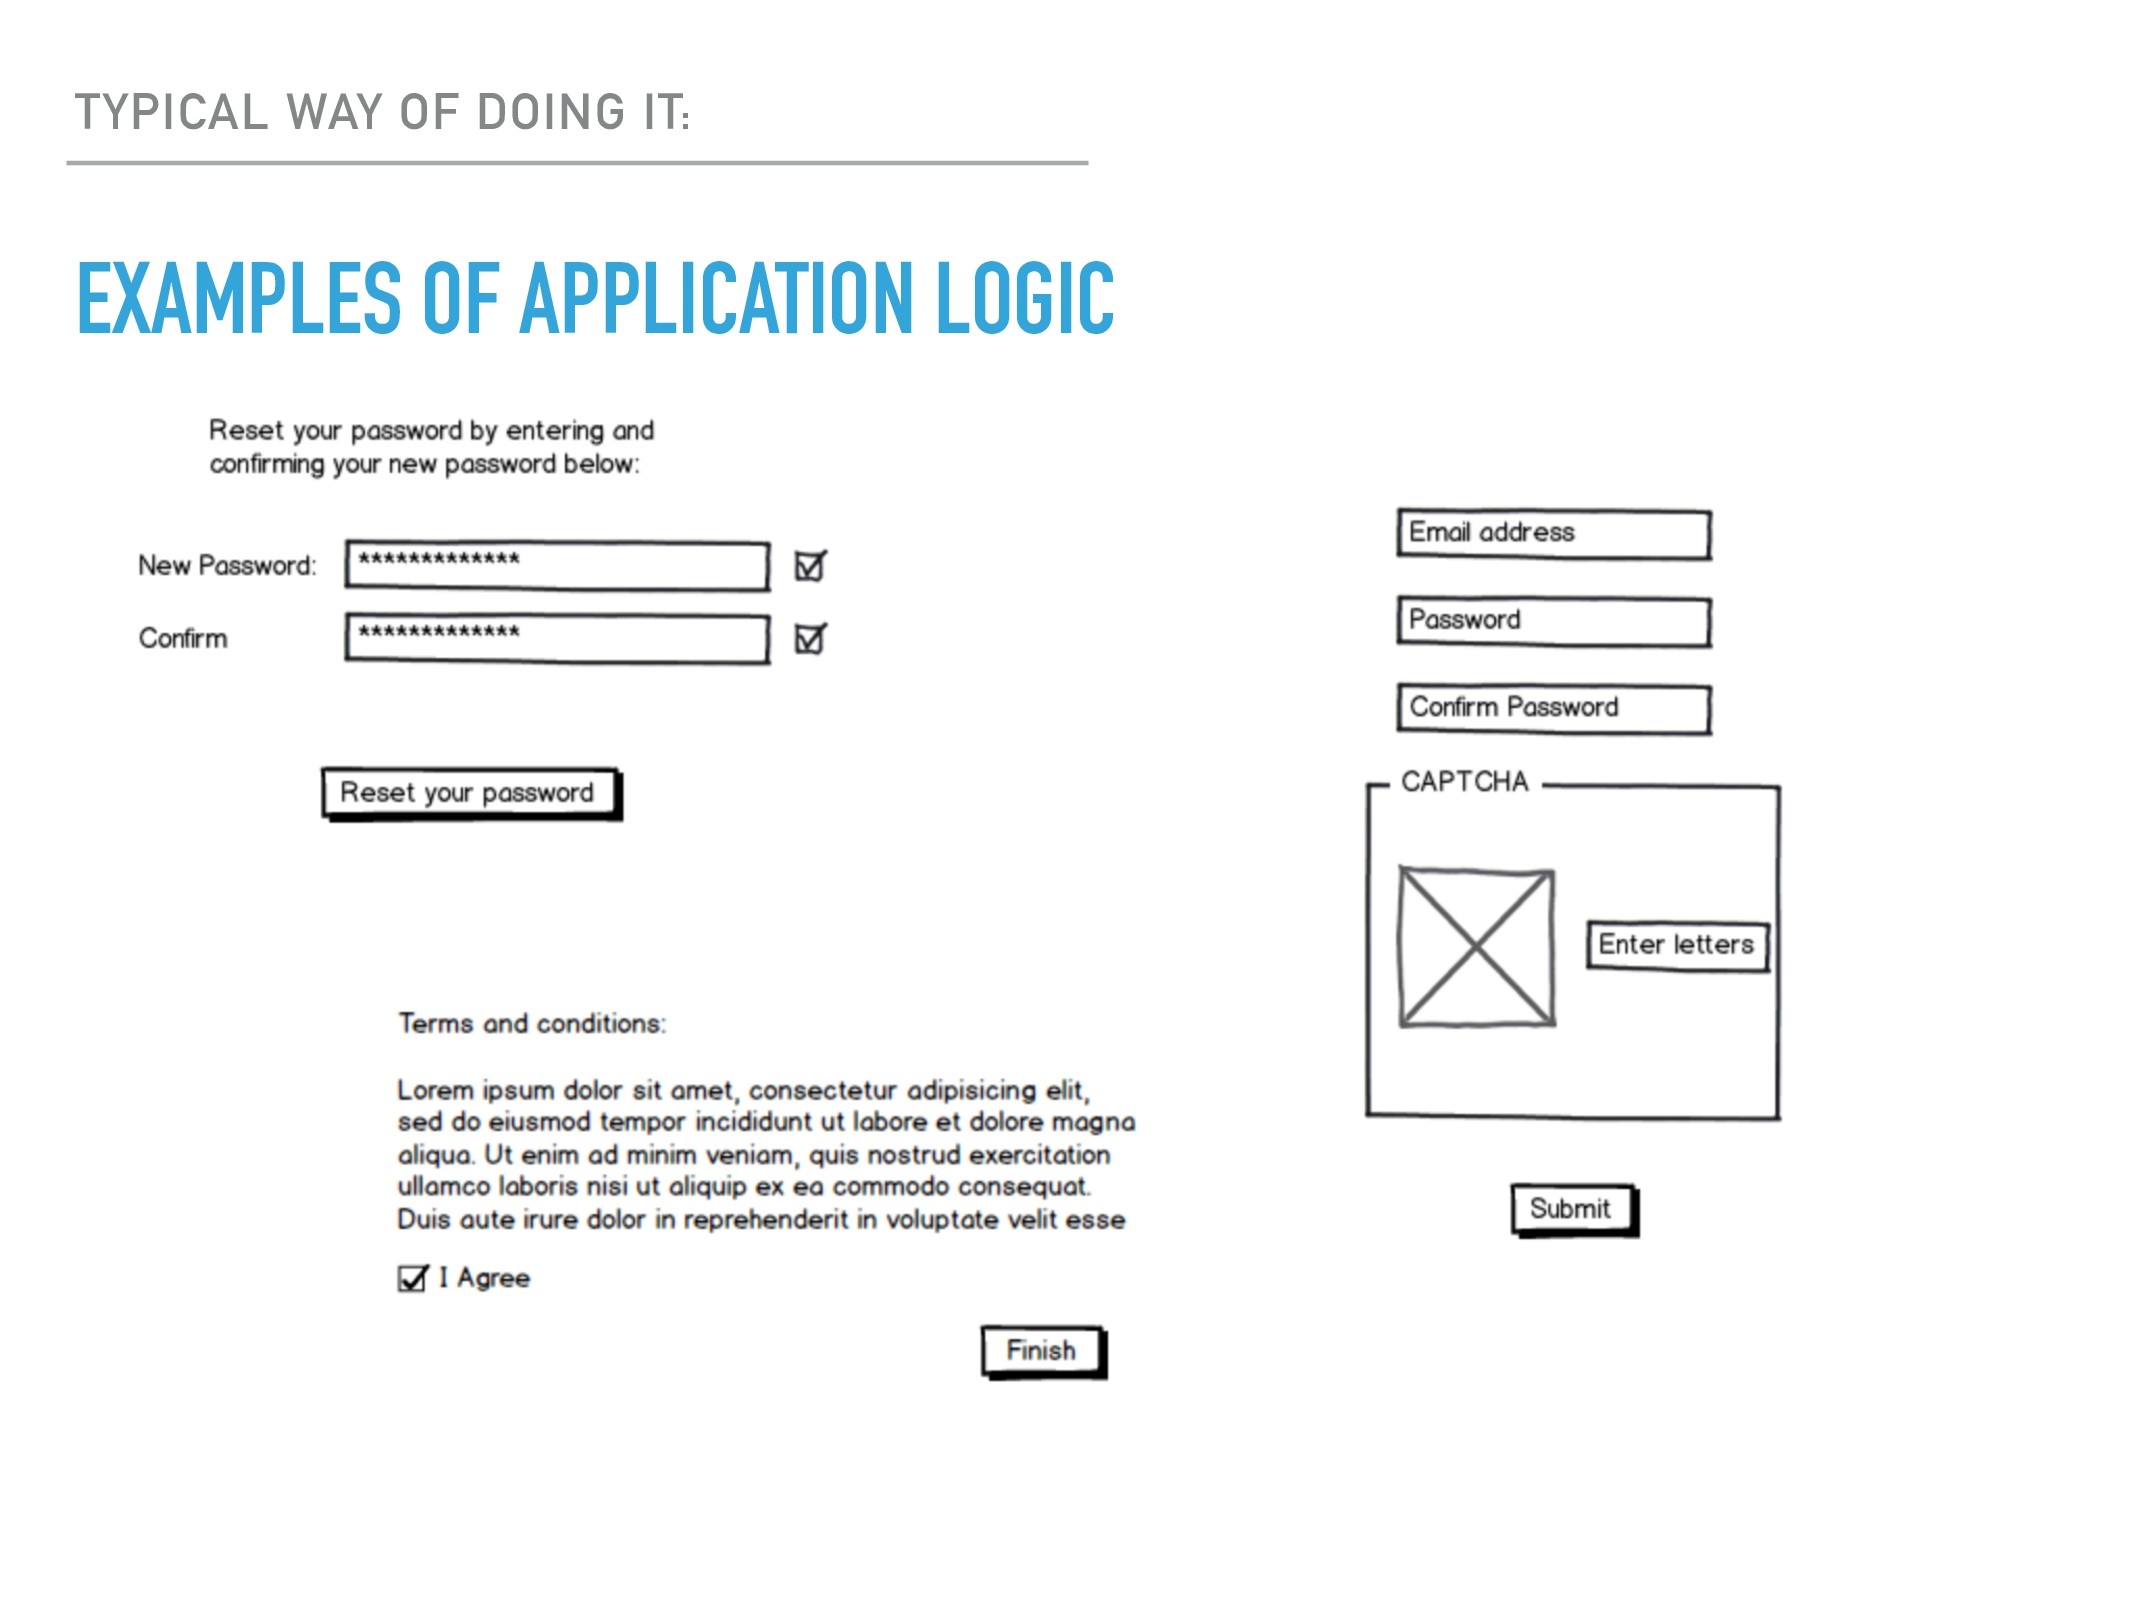 EXAMPLES OF APPLICATION LOGIC TYPICAL WAY OF DO...